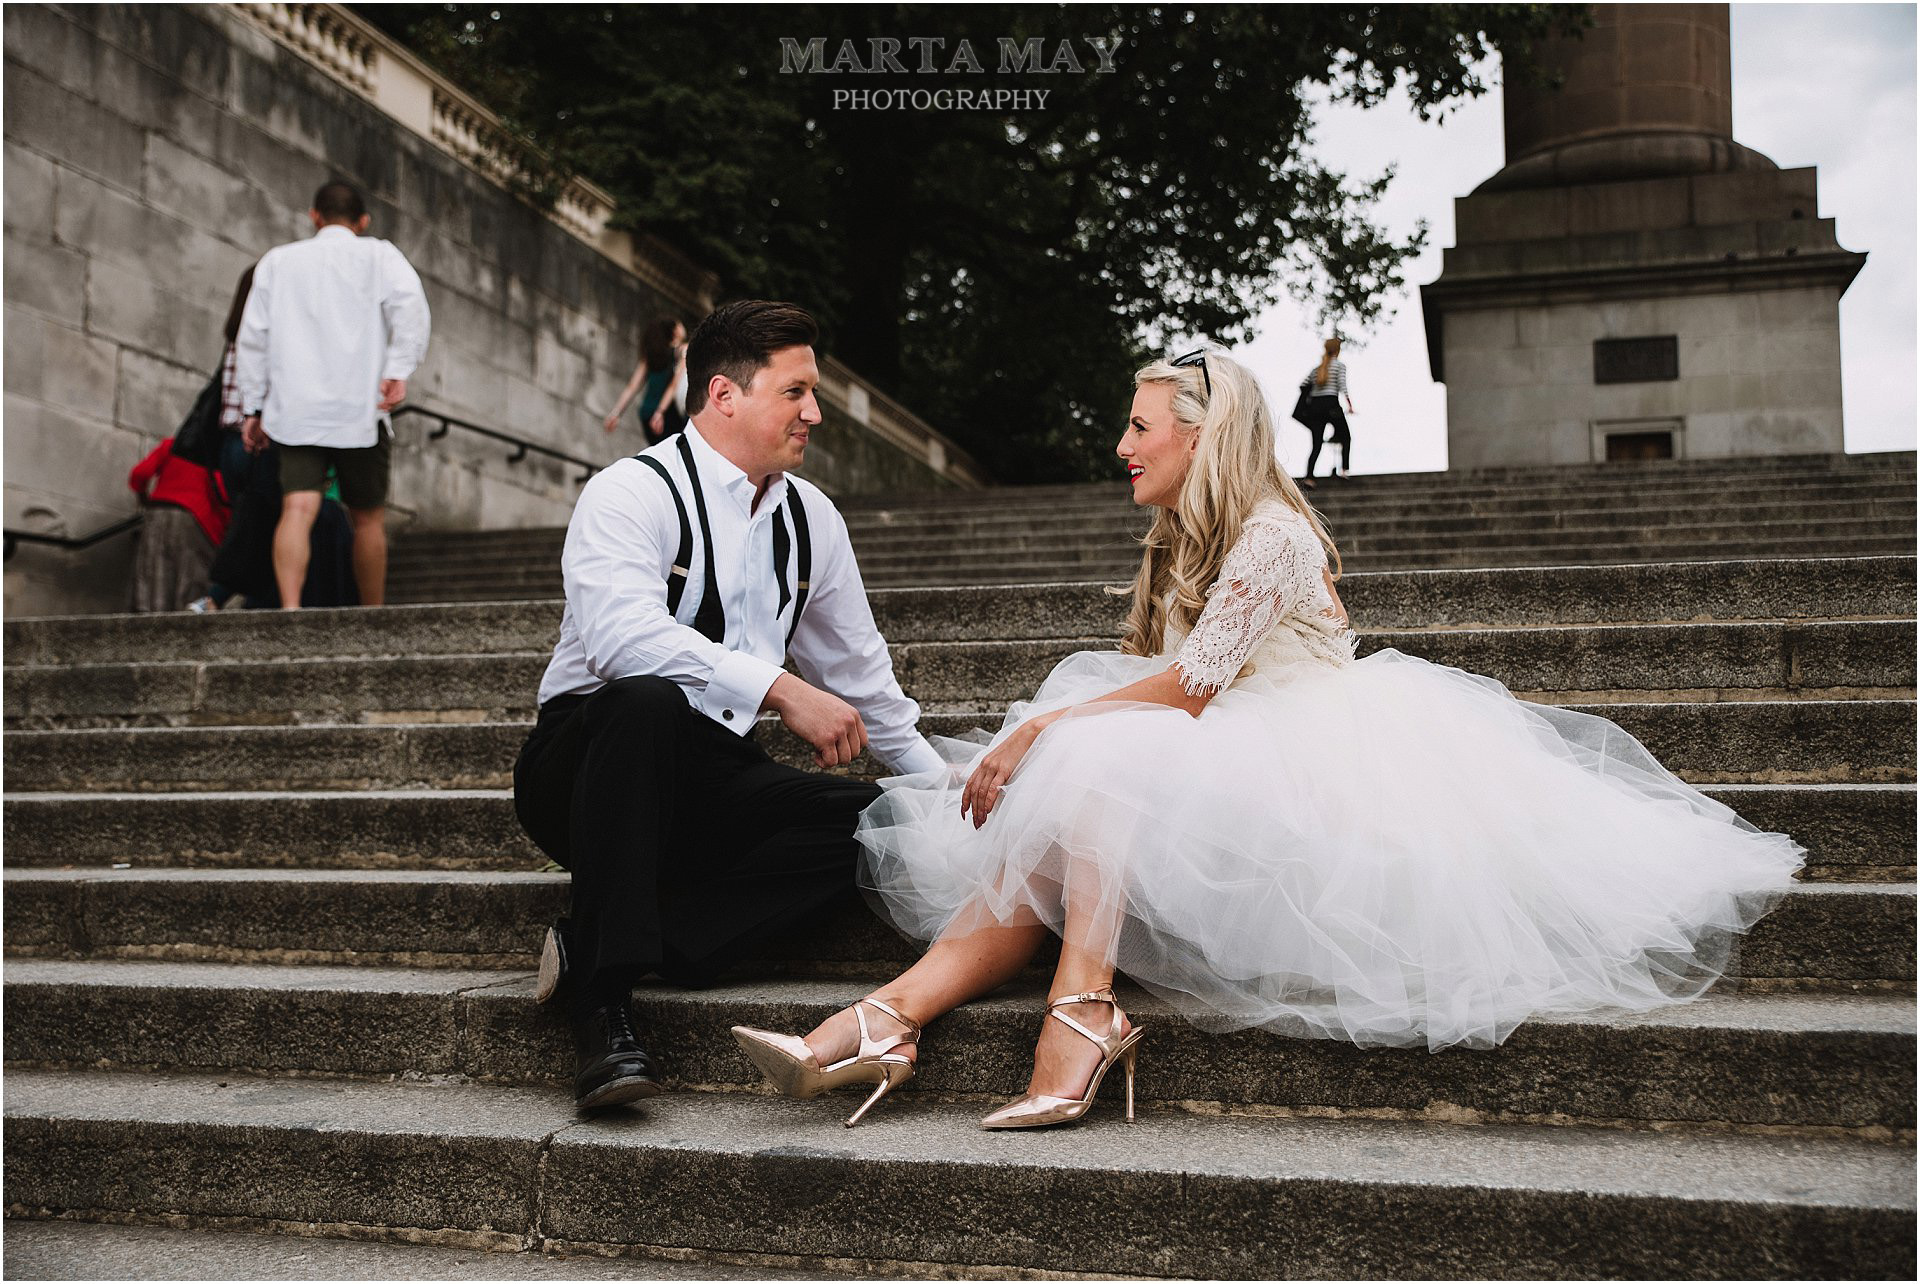 Marta May Photography_7149